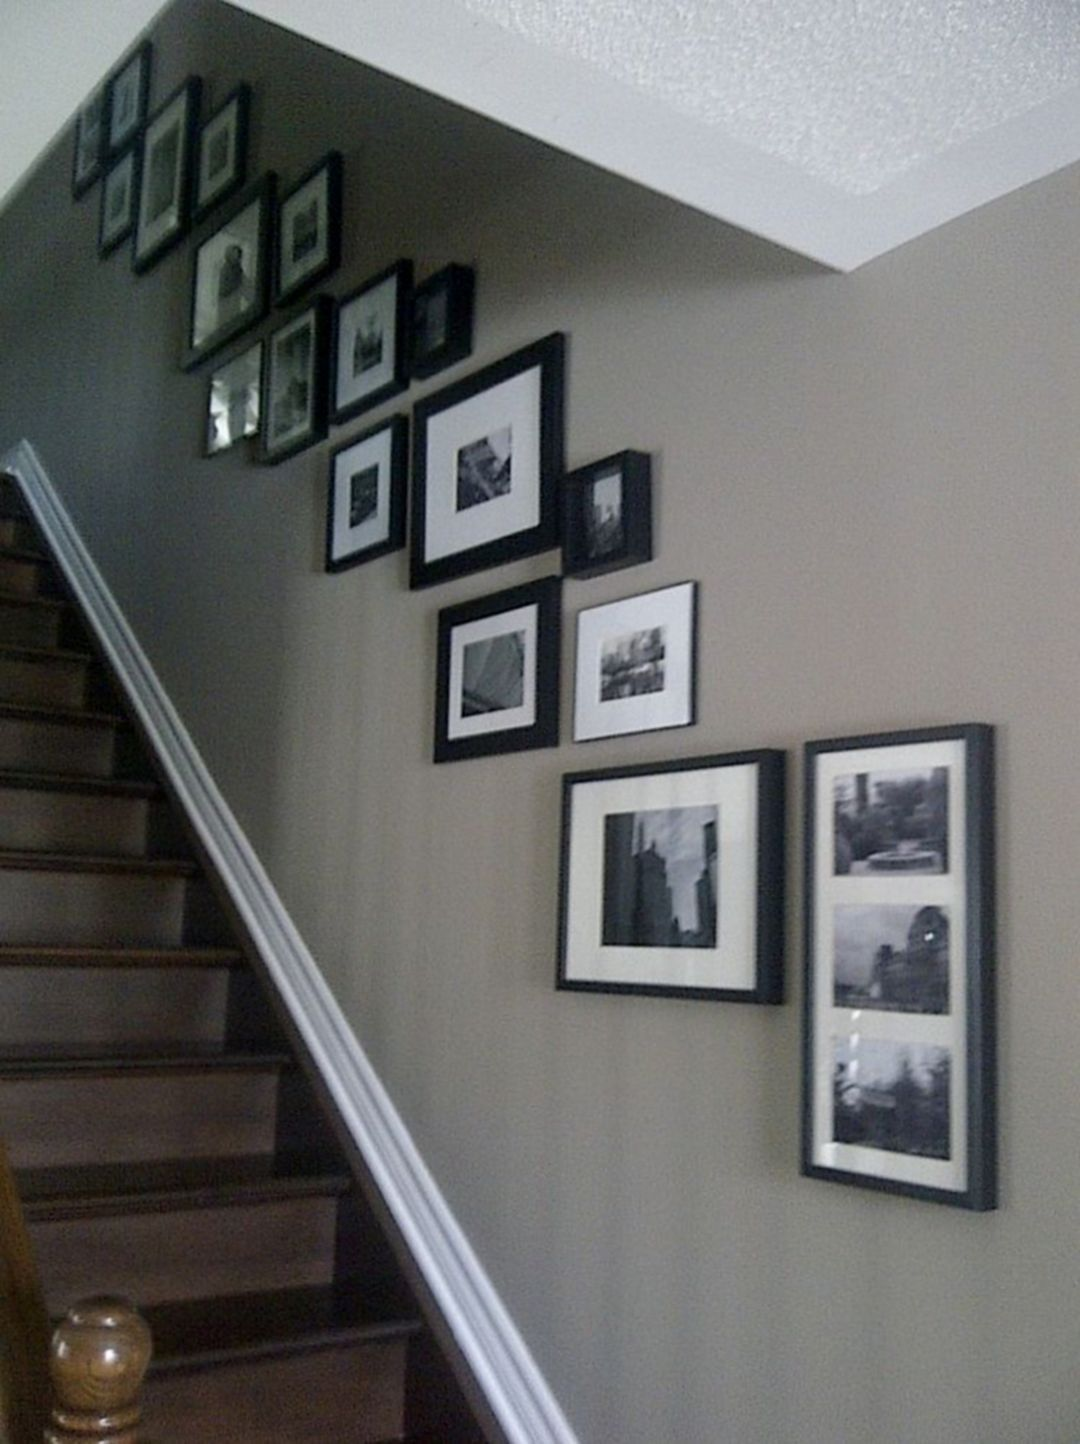 Incredible Wall Gallery Ideas For Perfect Wall Decor 1222 Decoor Staircase Wall Decor Stair Walls Stair Wall Ideas